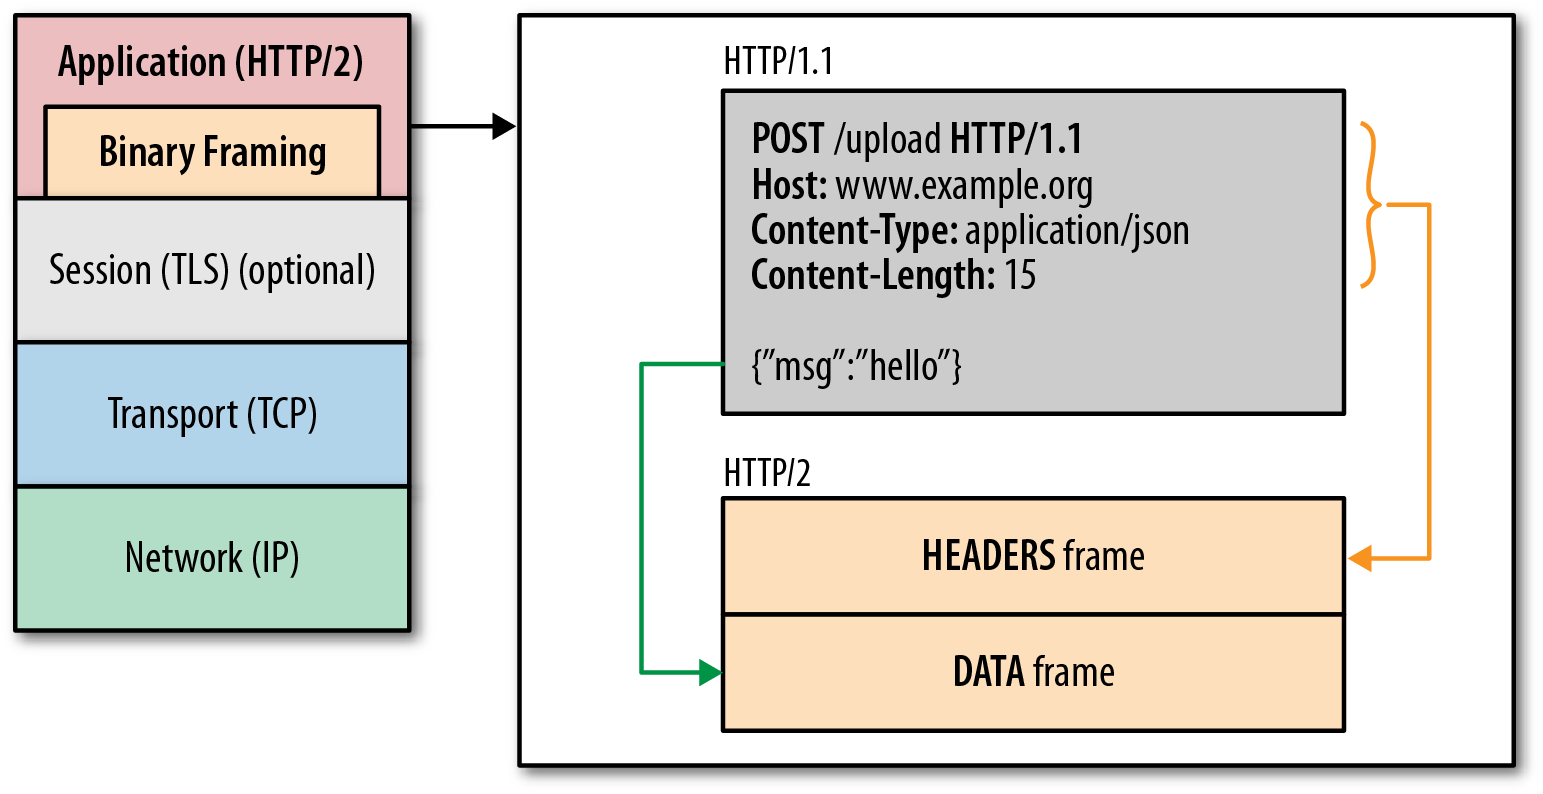 HTTP 2.0 binary framing layer